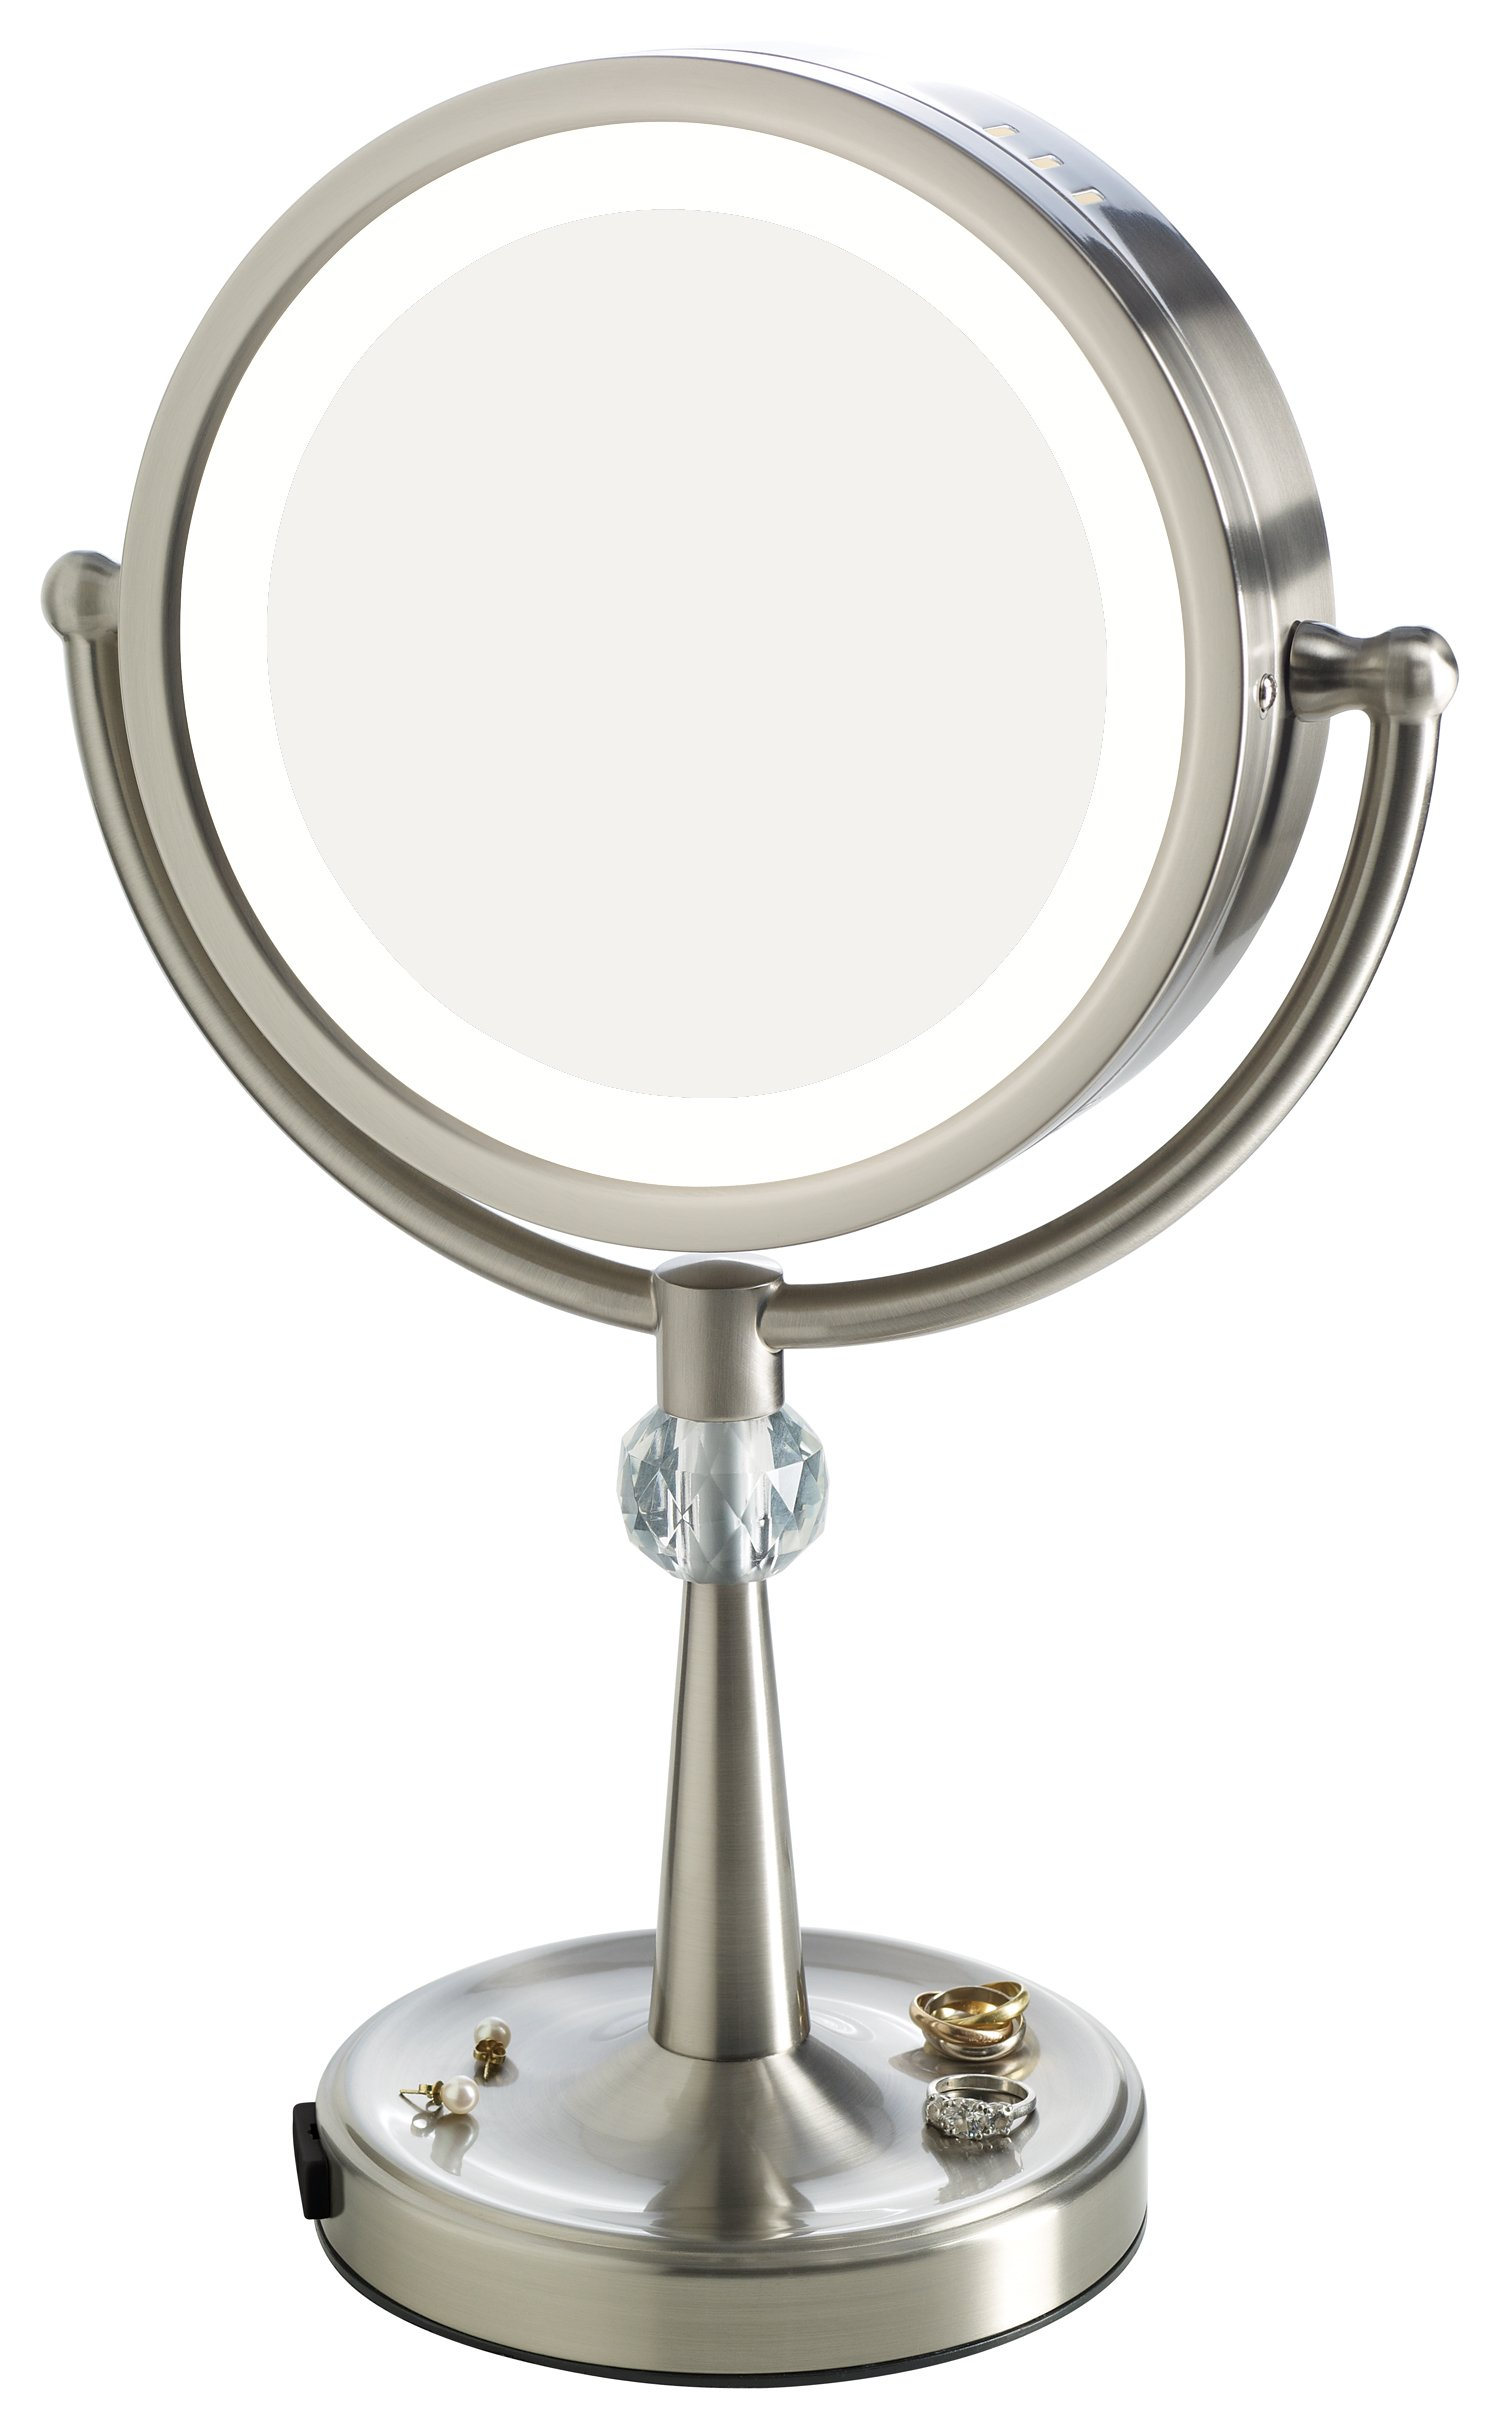 Elizabeth Arden 1x/10X Magnification Lighted Tall Makeup Vanity Counter-Top Mirror w/ Recessed Jewelry Tray and Adjustable 360-Degree Rotation by Elizabeth_Arden